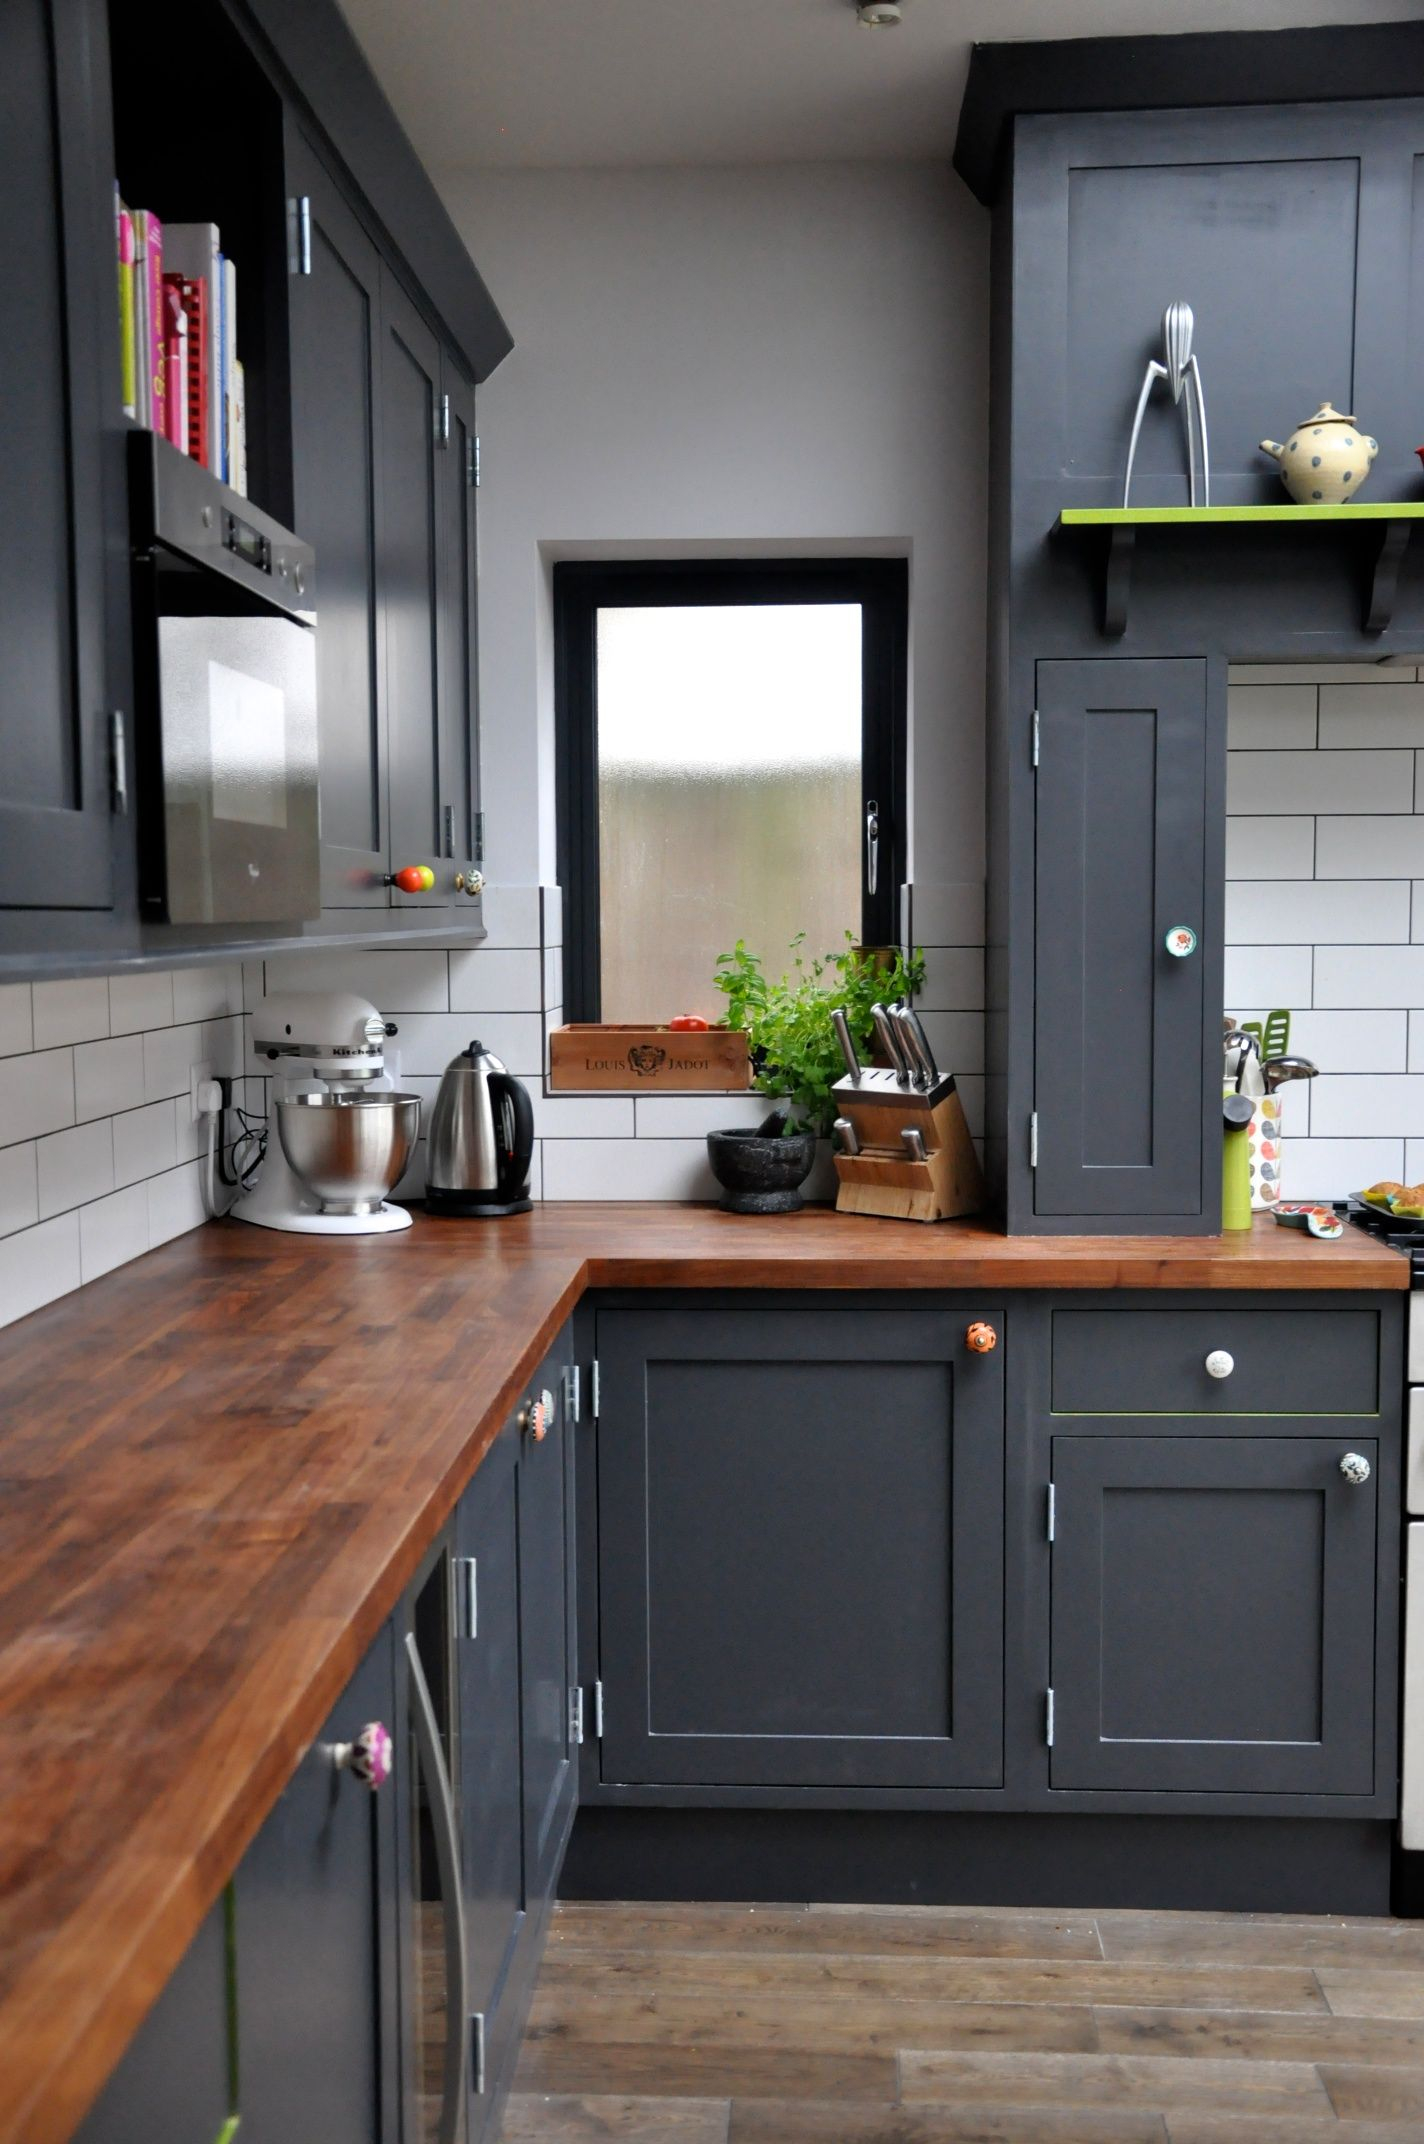 wood countertops kitchen Decorating With Black 13 Ways To Use Dark Colors In Your Home Walnut CountertopWalnut WorktopsWalnut Kitchen